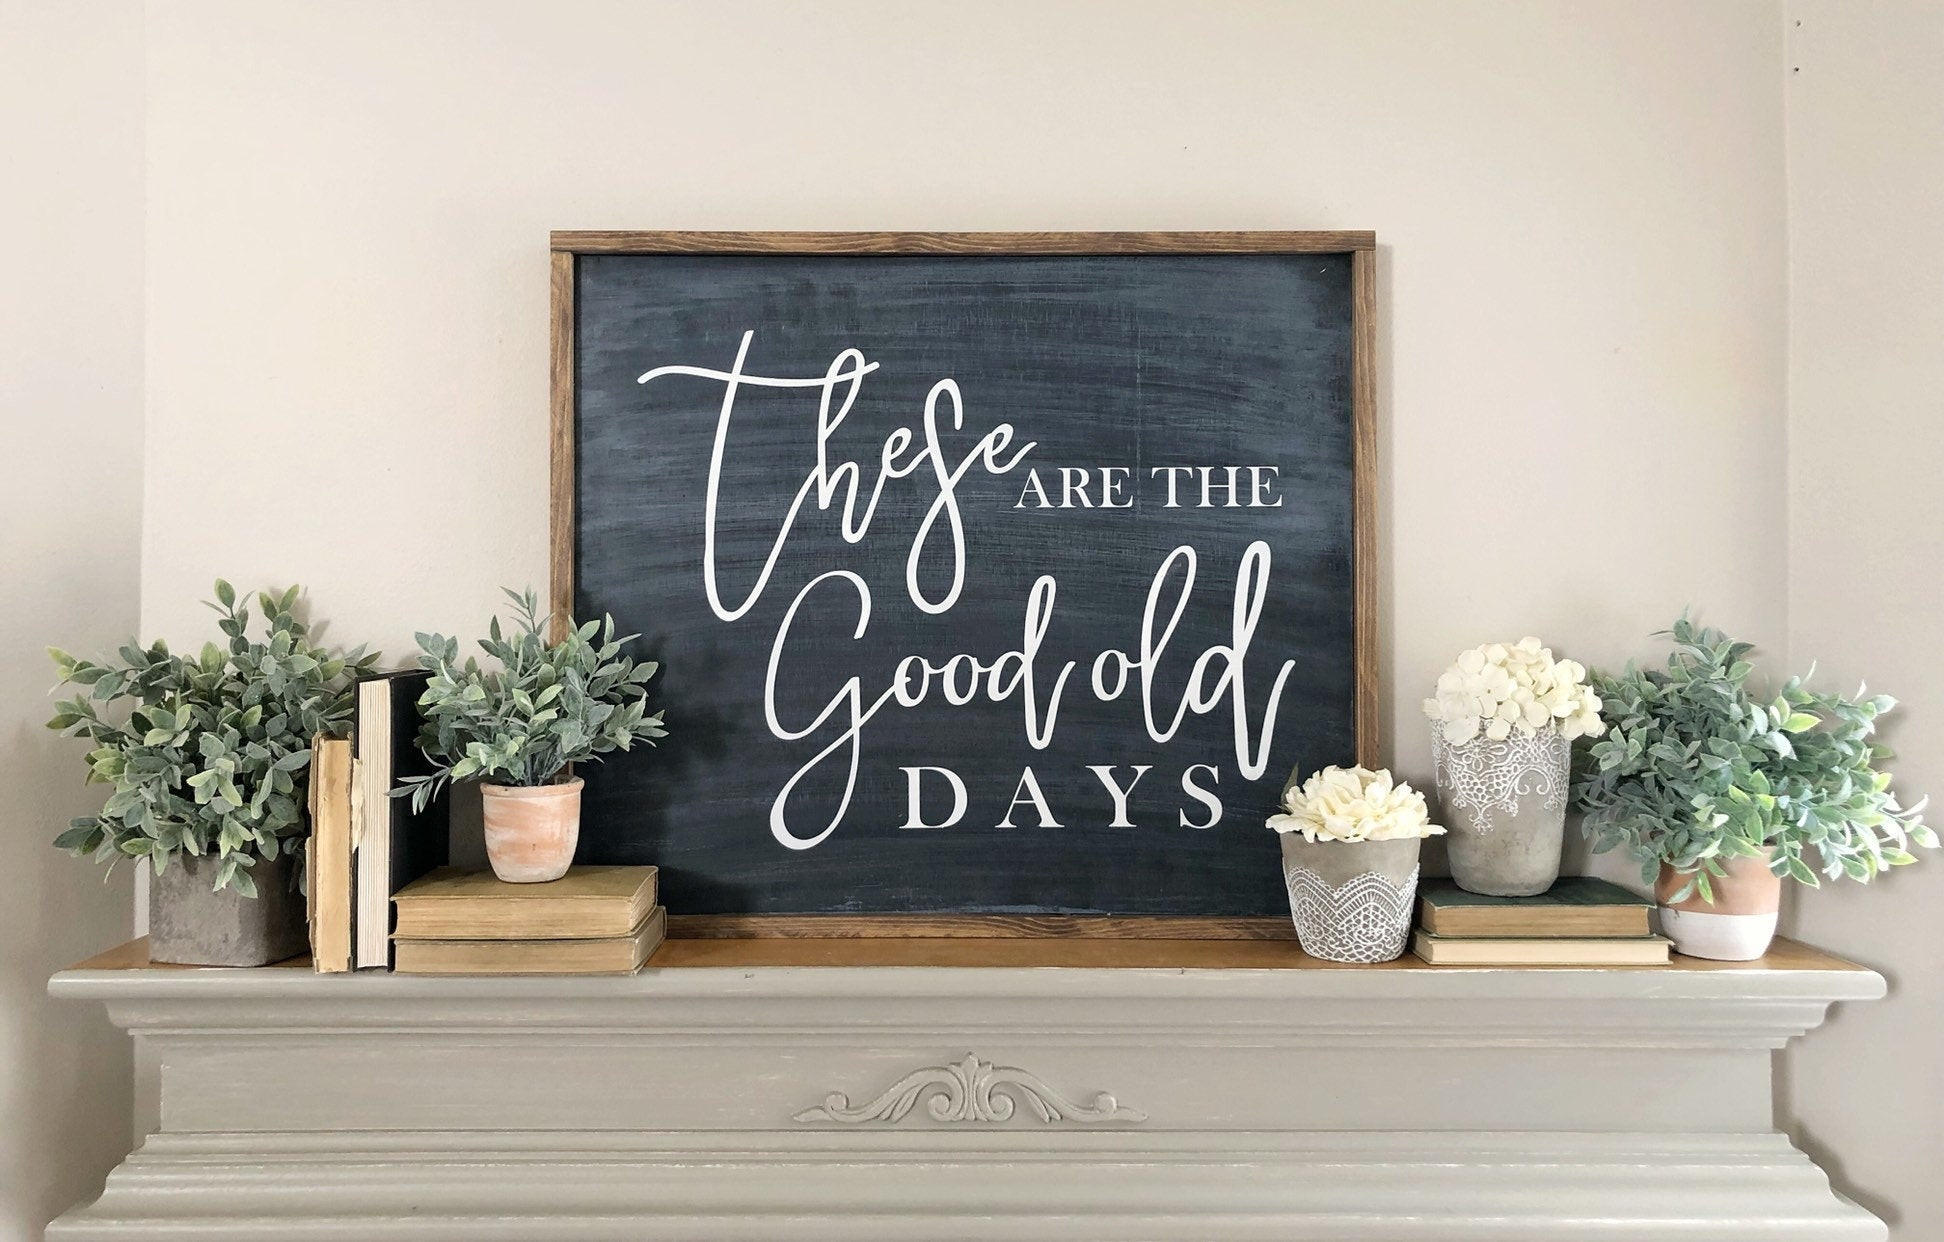 These Are The Good Old Days sign 32x26 | These Are The Good Old Days | These Are The Good Old Days Sign | Farmhouse Sign | L